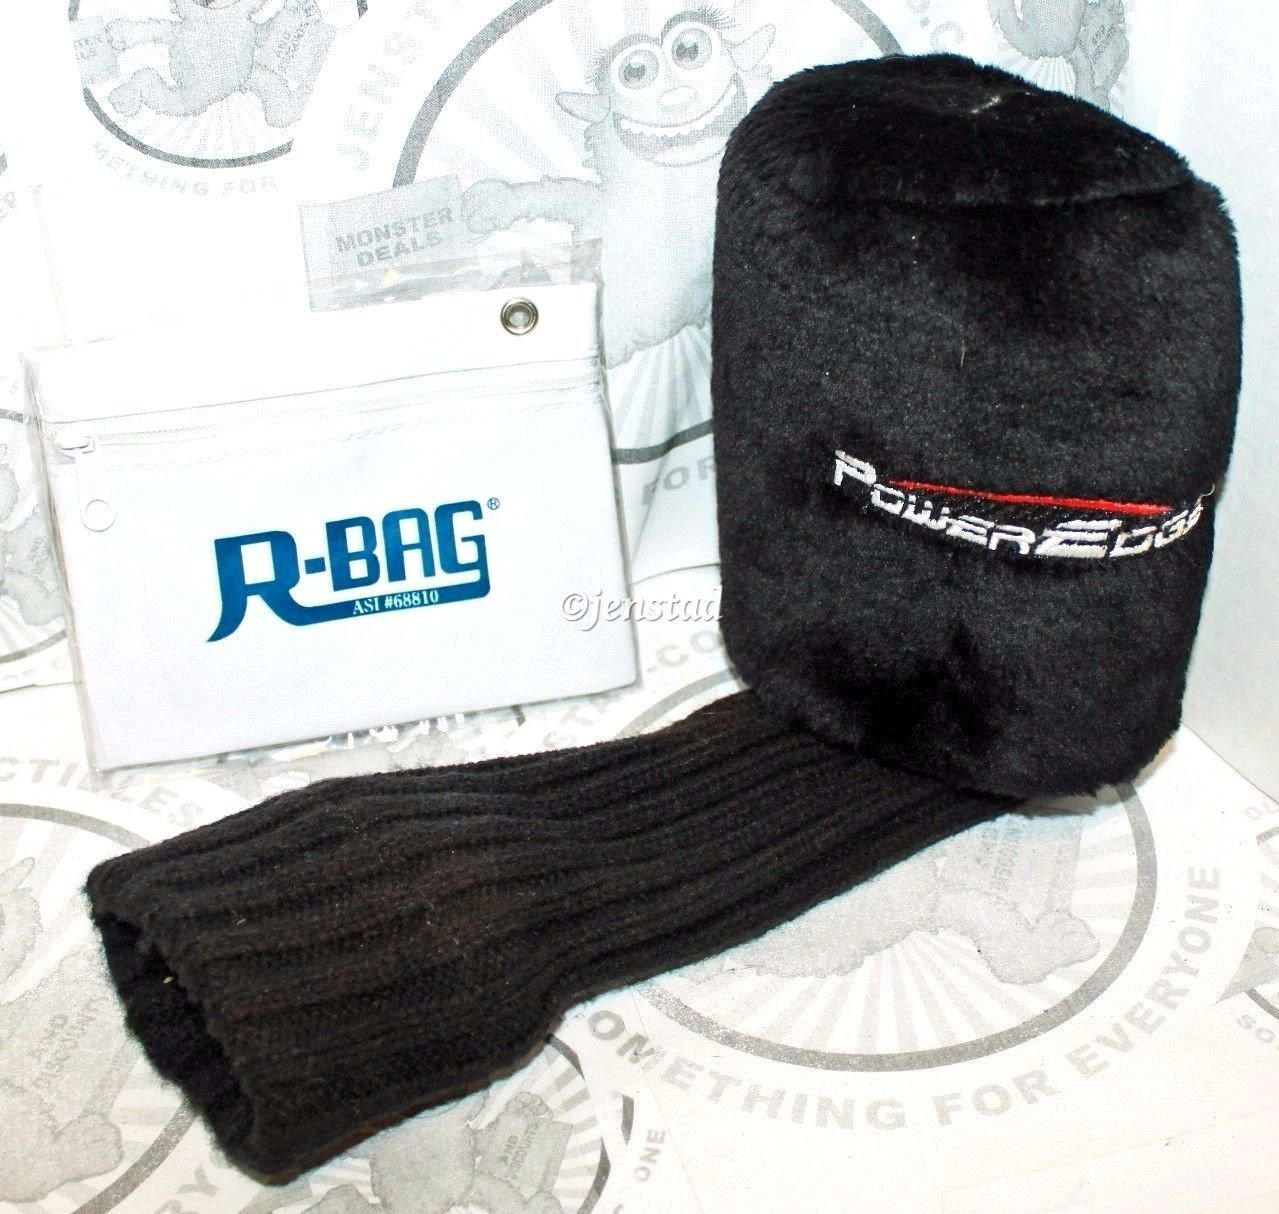 POWEREDGE #7 PROTECTIVE HEADCOVER GOLF CLUB ACCESSORY & R-BAG POUCH USED